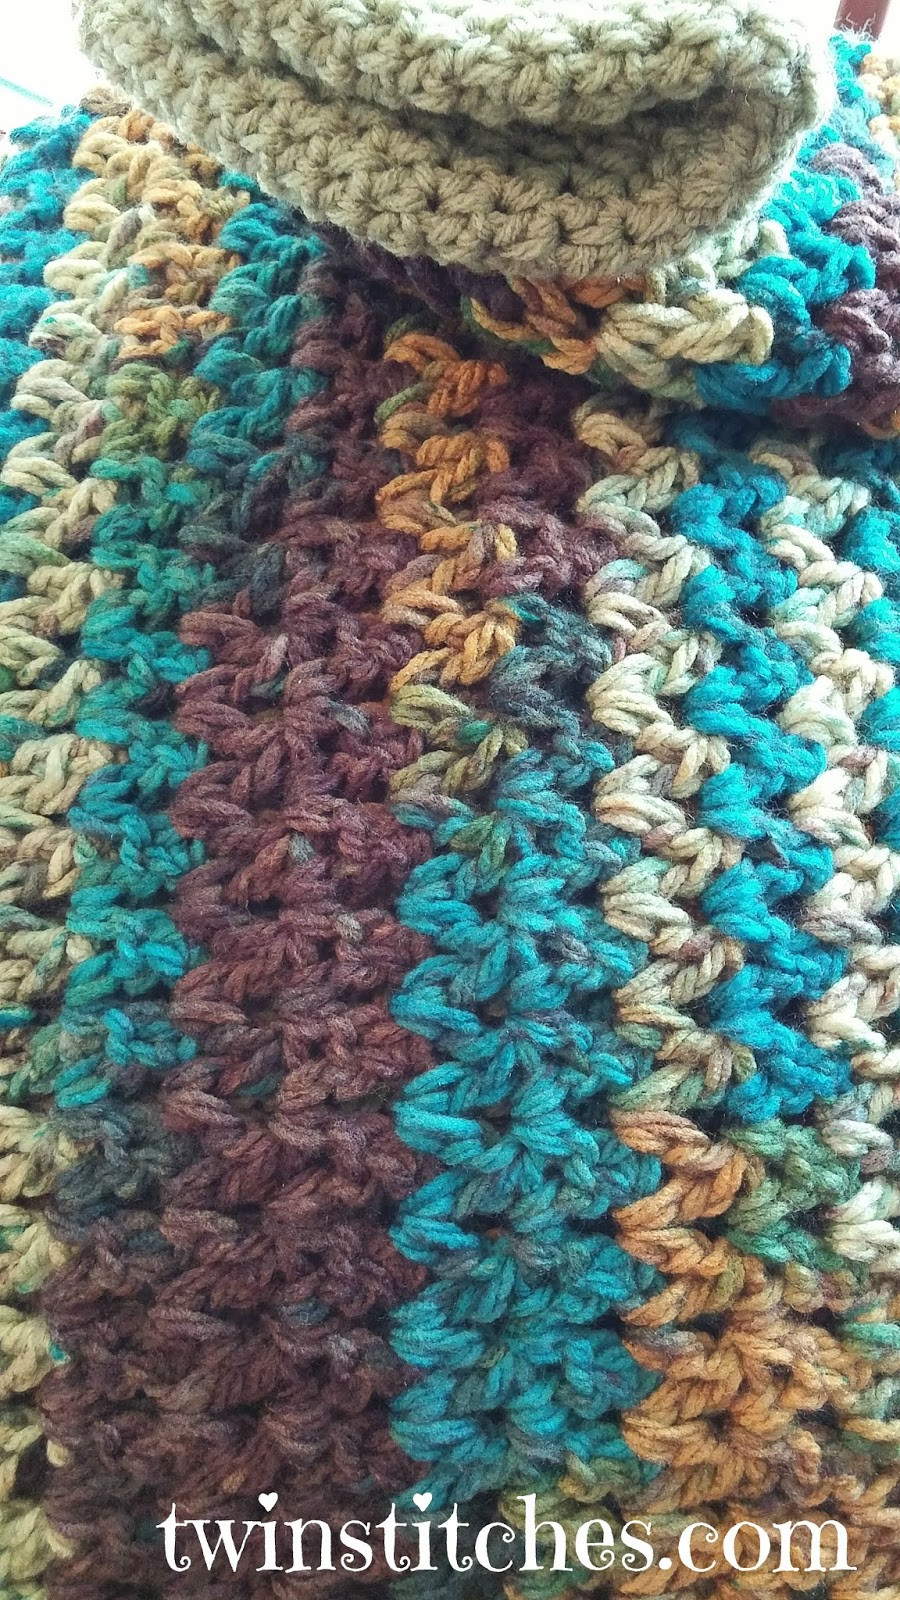 Yarn for Crochet Blanket Lovely Tw In Stitches Sedona Wobbly Stripes Blanket Free Of Amazing 41 Photos Yarn for Crochet Blanket